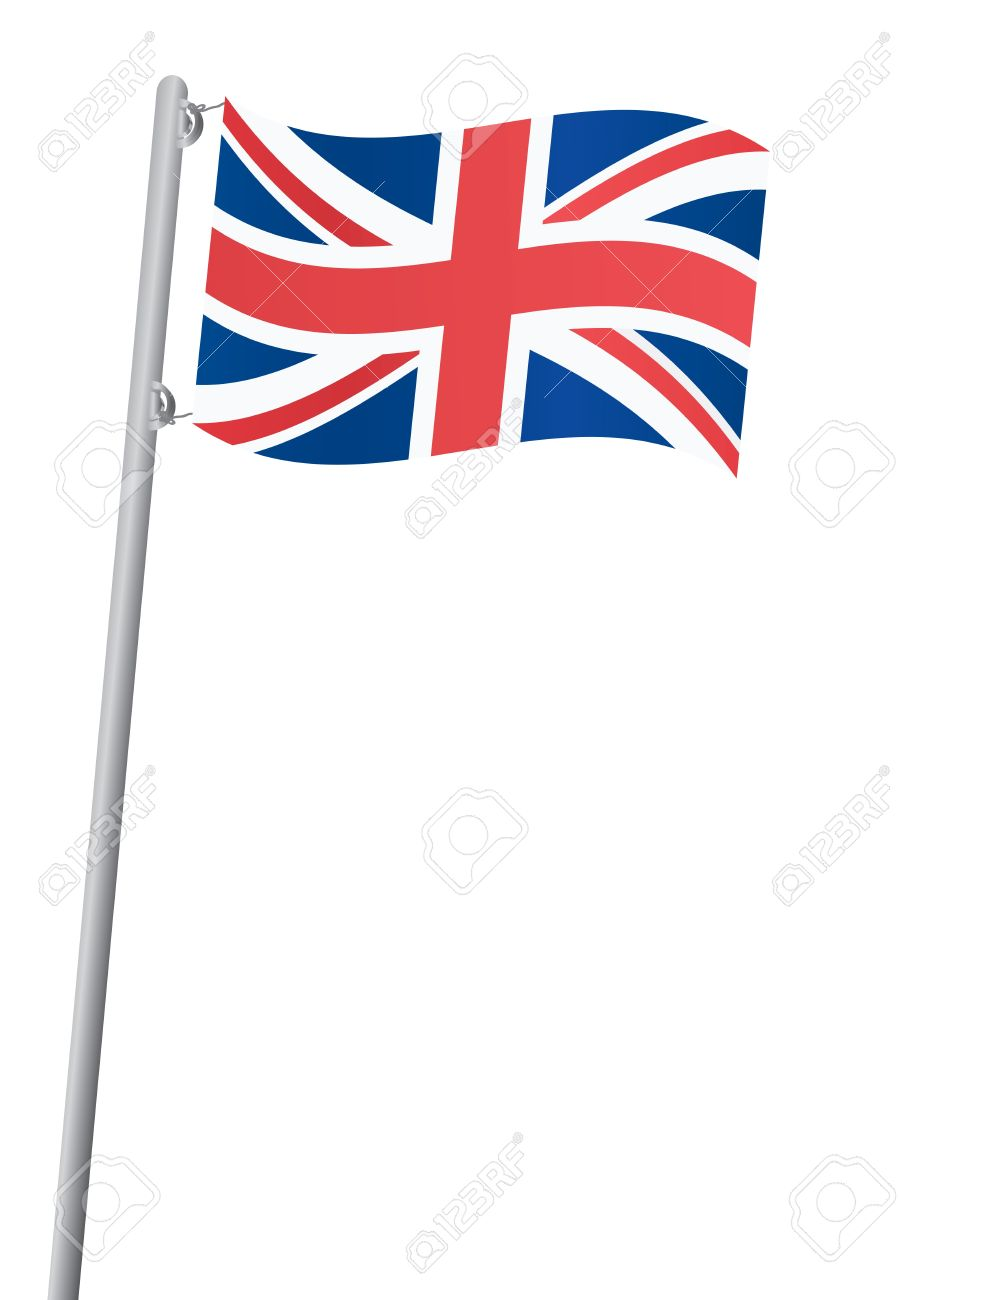 Flagpole Clipart   Free download best Flagpole Clipart on ...